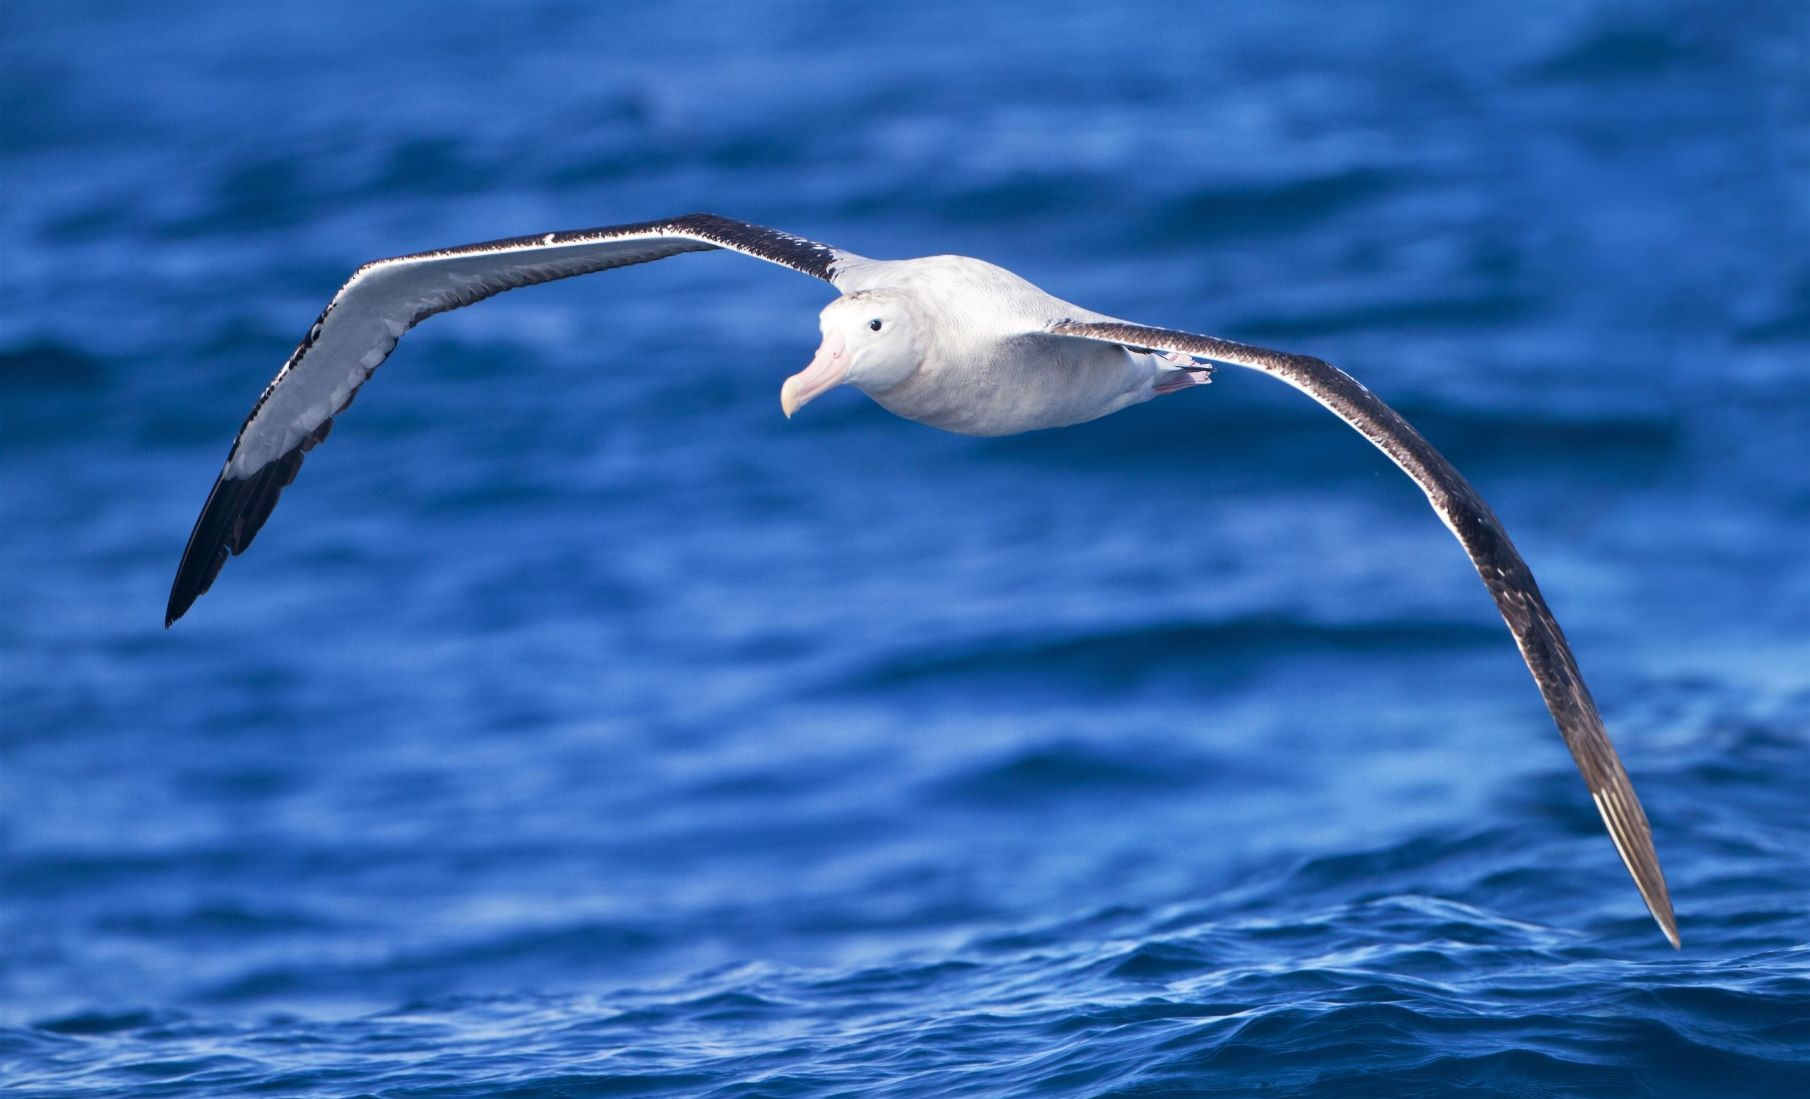 A wandering albatross (Diomedea exulans) in flight off Tasmania, Australia. These birds have the wingspan of up to 3.5 meters (11.5 feet) of any bird and can soar for hours without flapping. Photo credit: JJ Harrison  (jjharrison89@facebook.com) via Wikimedia Commons, CC 3.0.